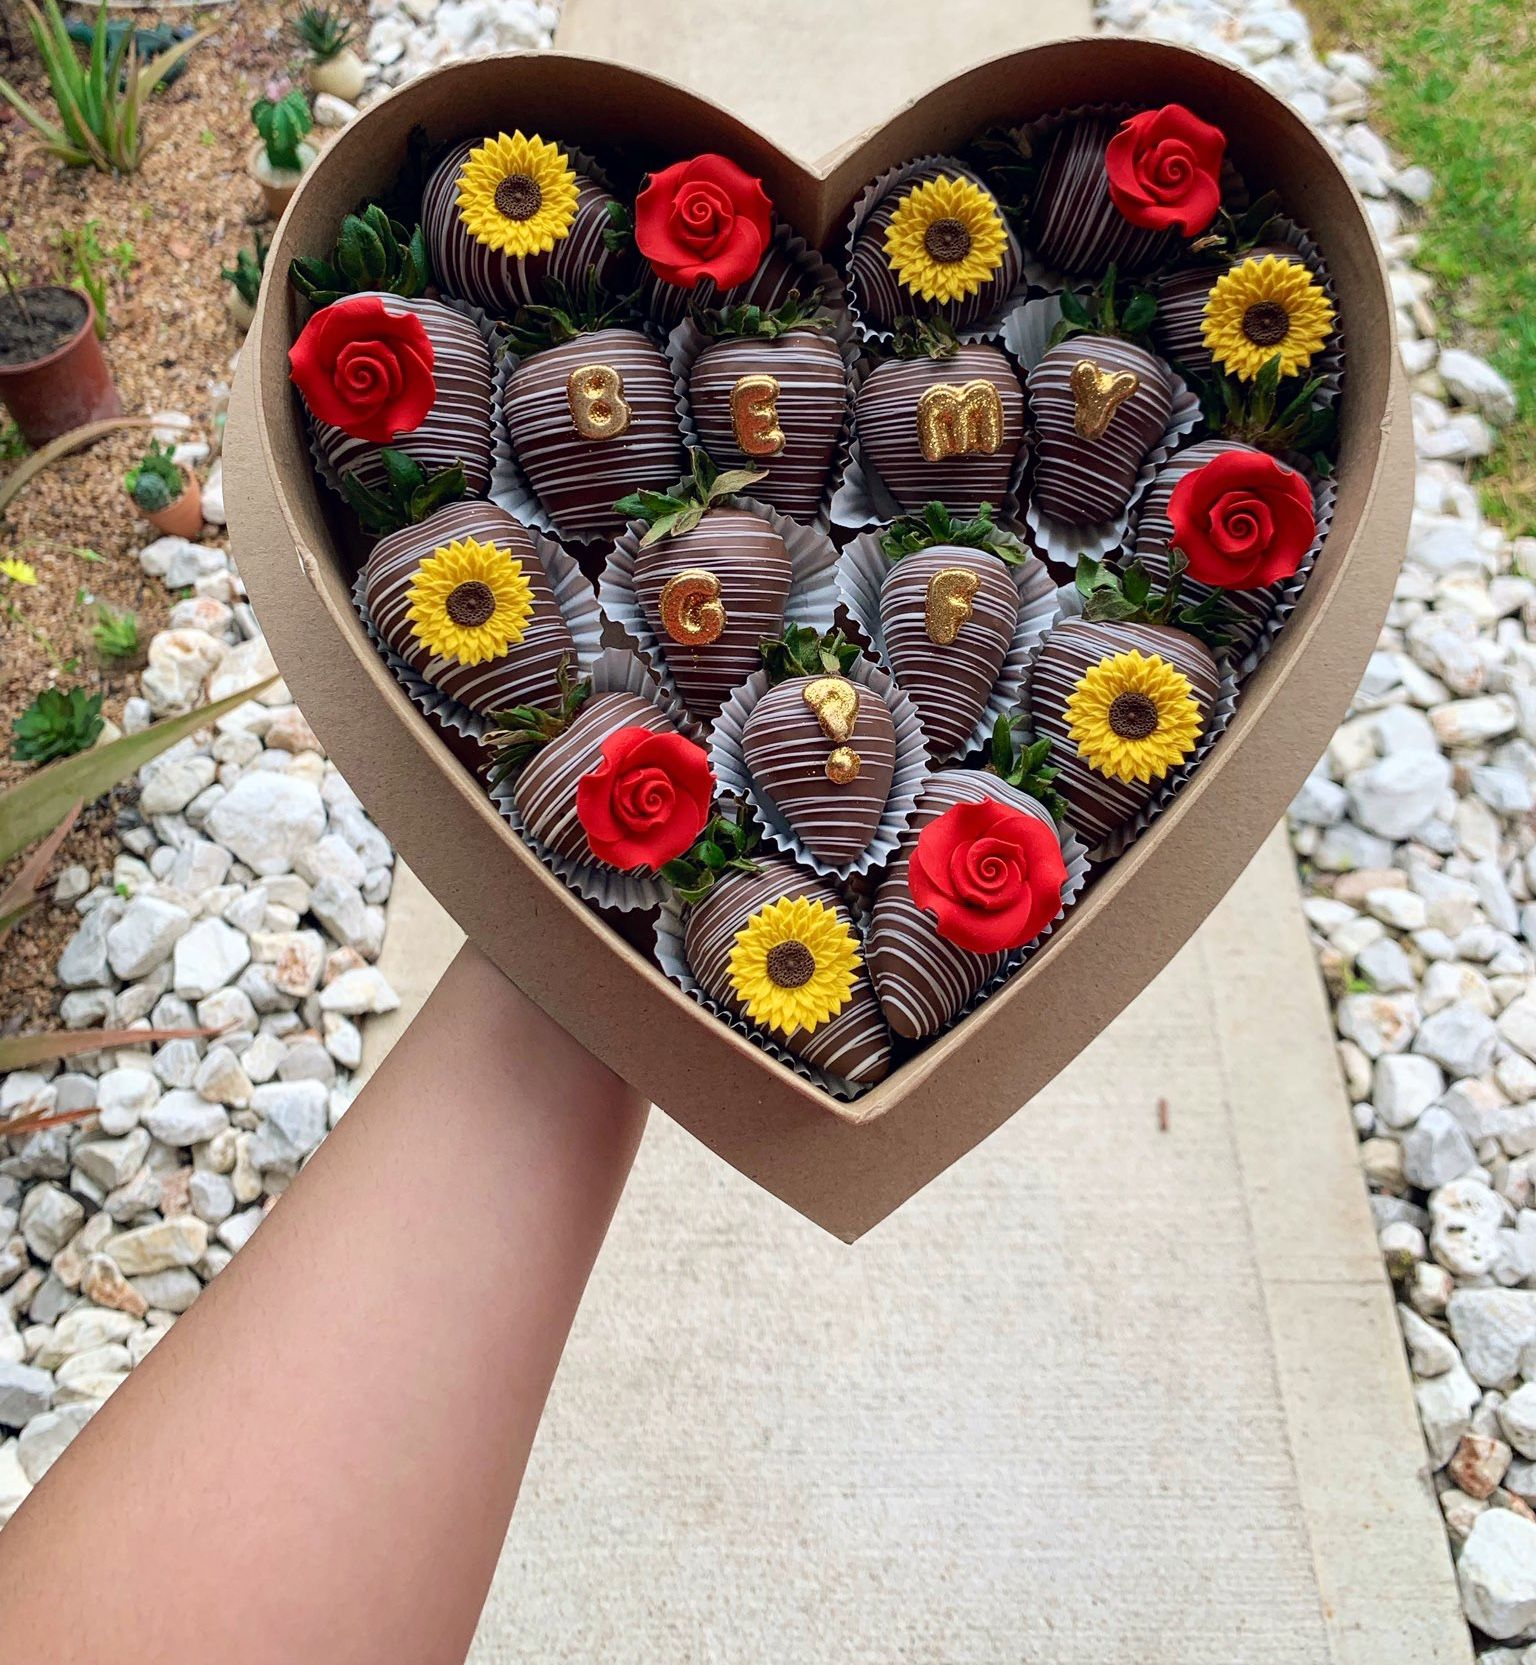 Cute Couples Idea Be My Girlfriend Proposal Chocolate Covered Strawberries Bouquet Valentine Chocolate Covered Strawberries Chocolate Covered Strawberries